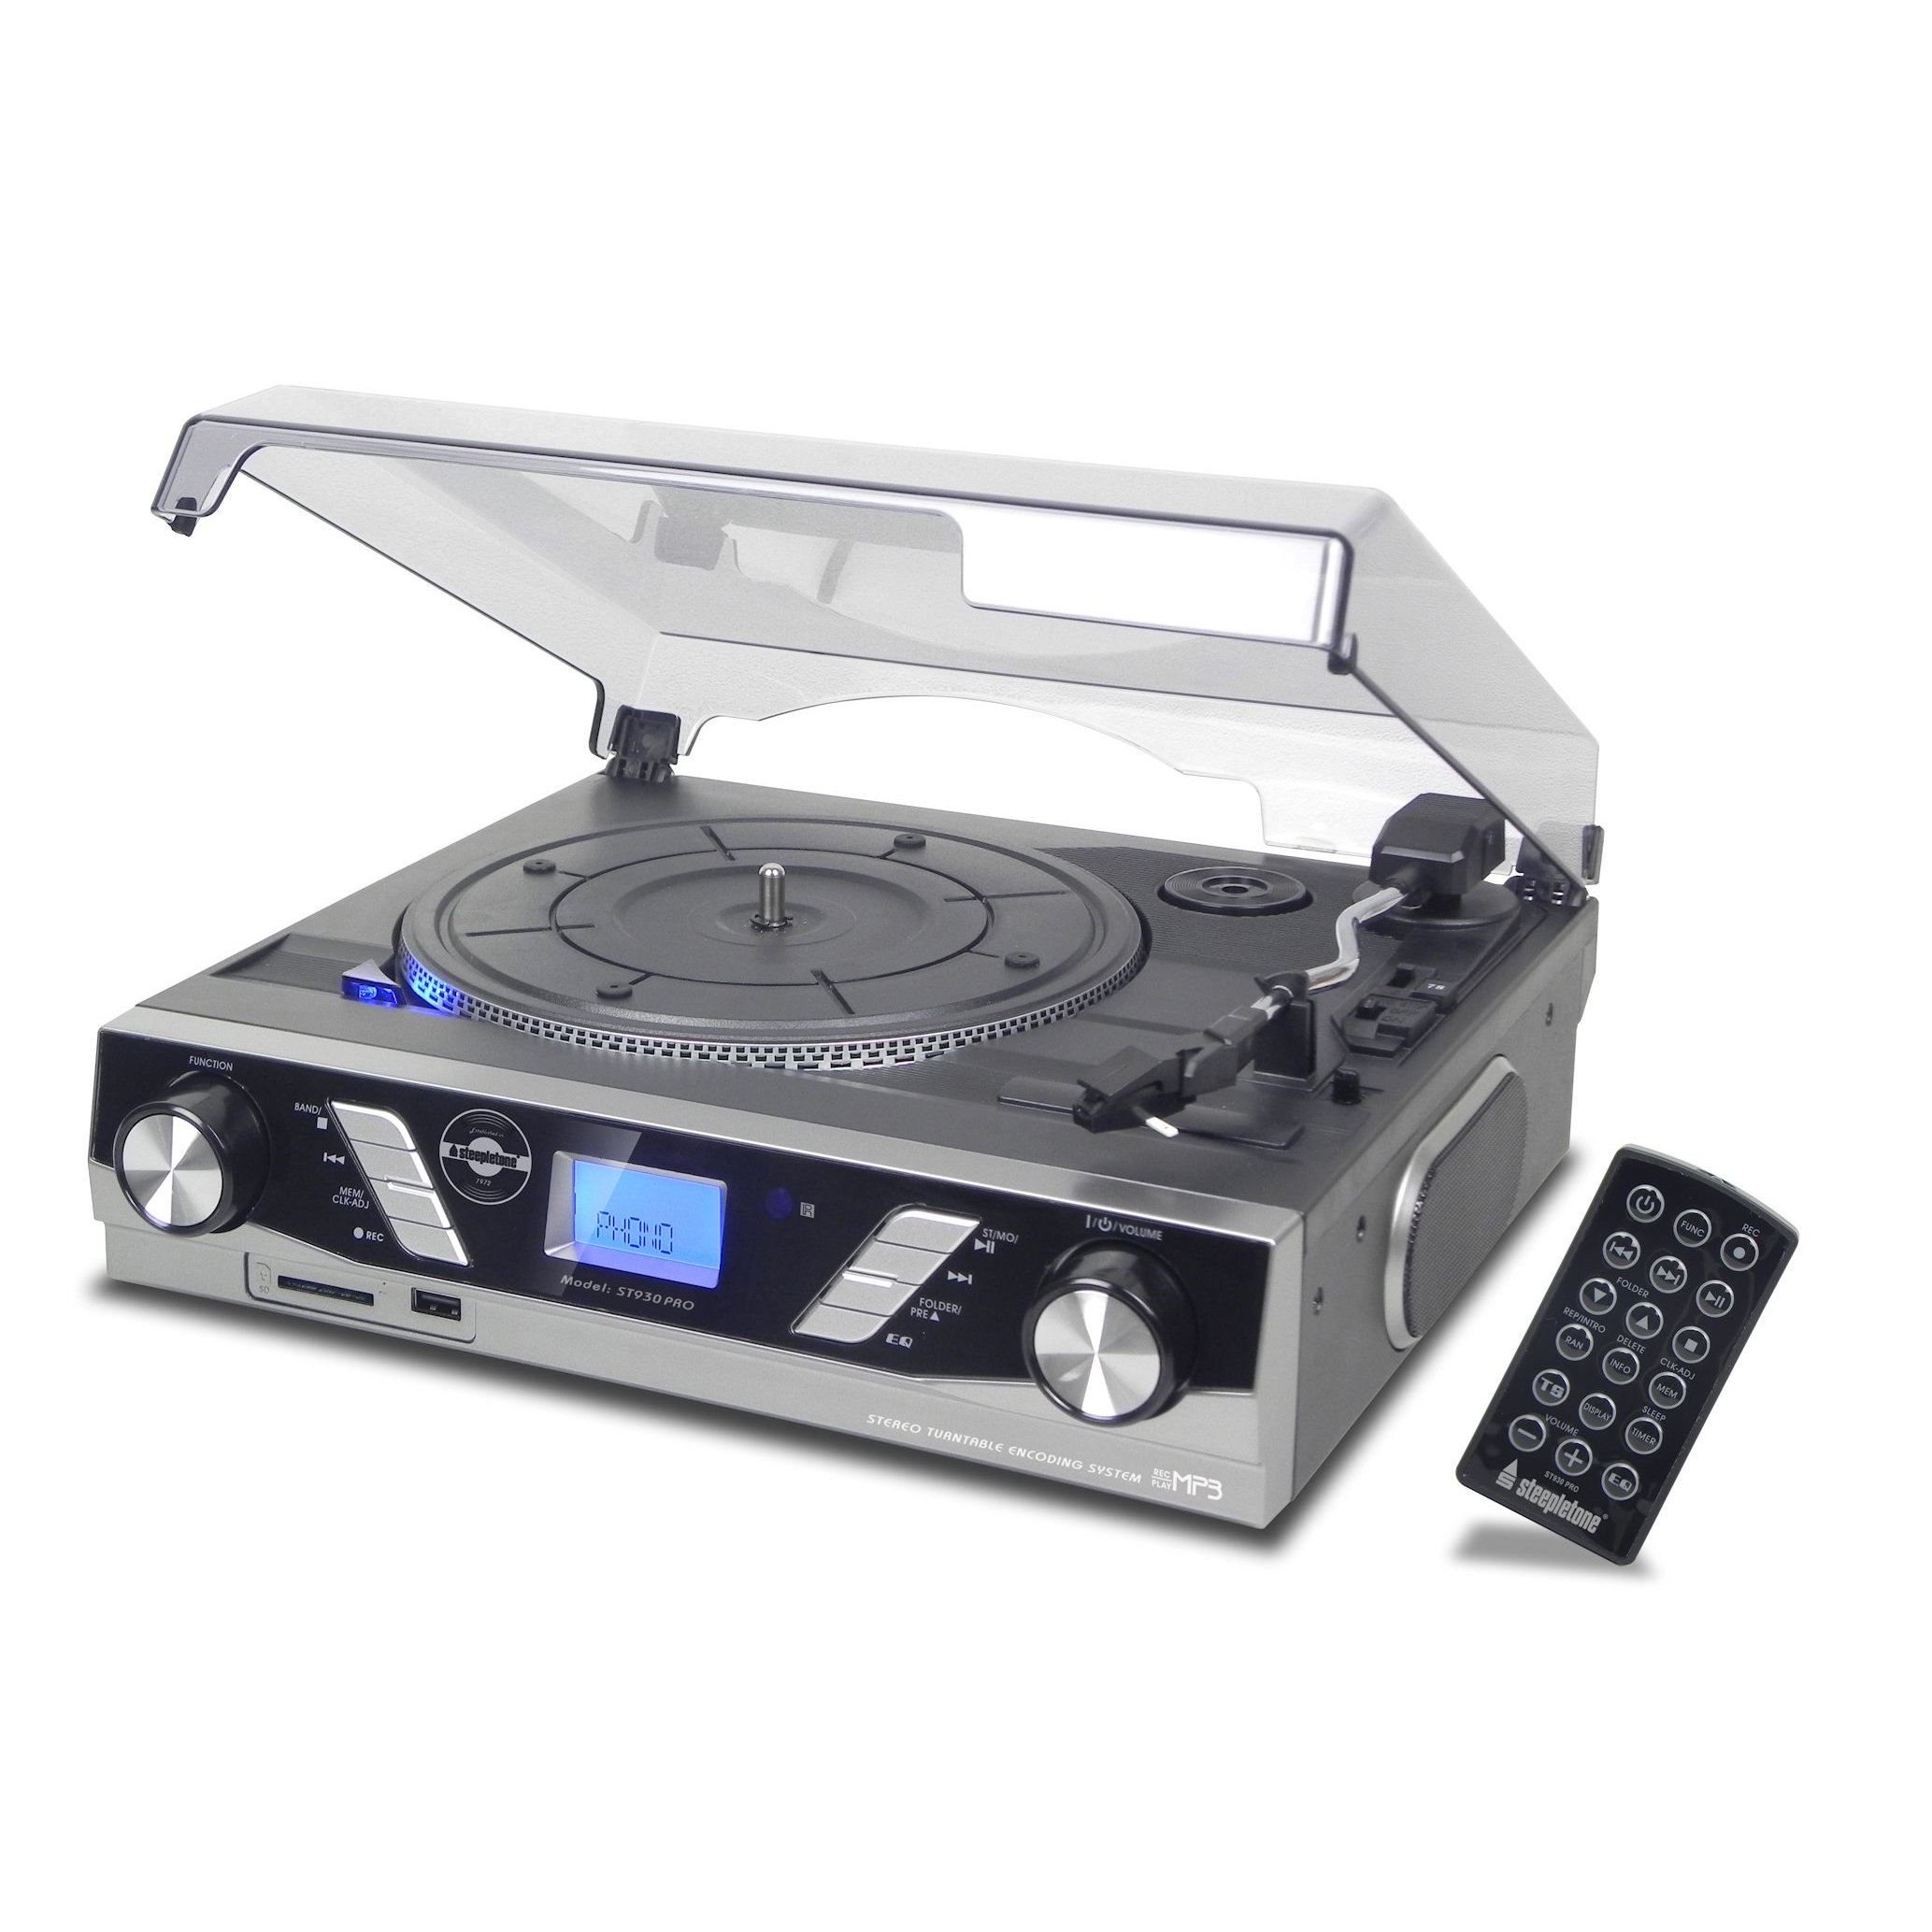 Steepletone ST930 PRO 3 Speed Record Player MP3 to USB SD Recording (Silver)